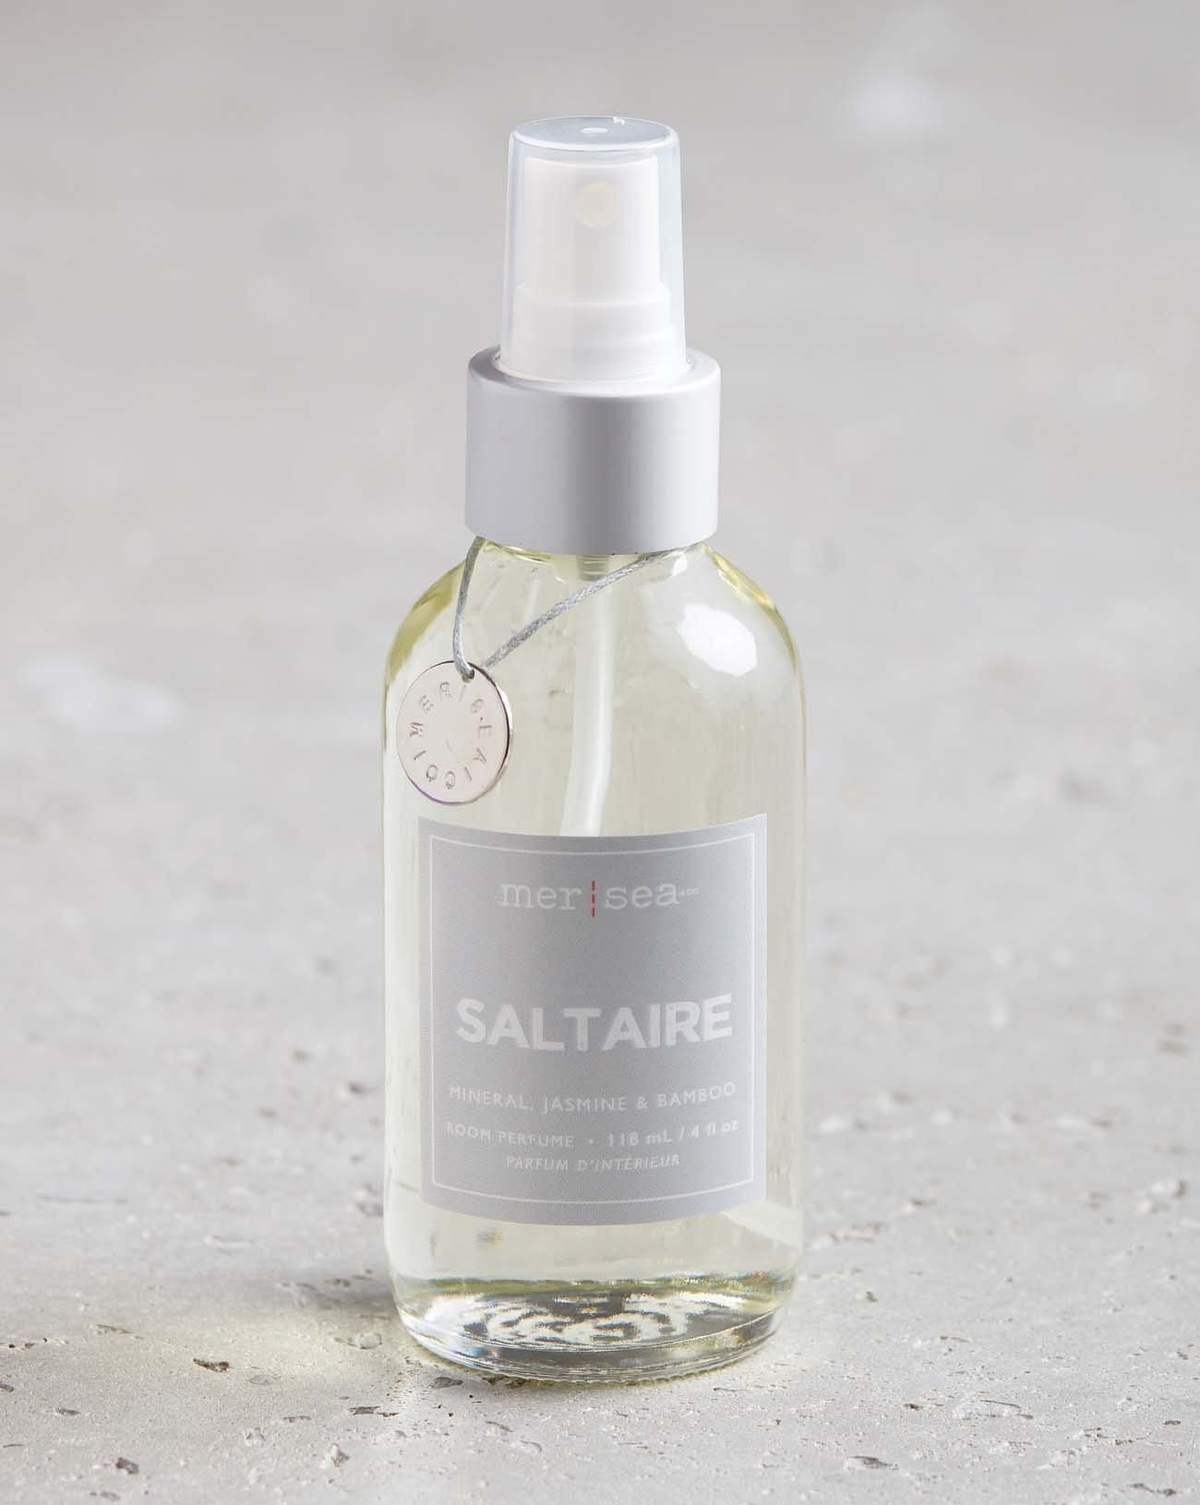 Saltaire Room Spray